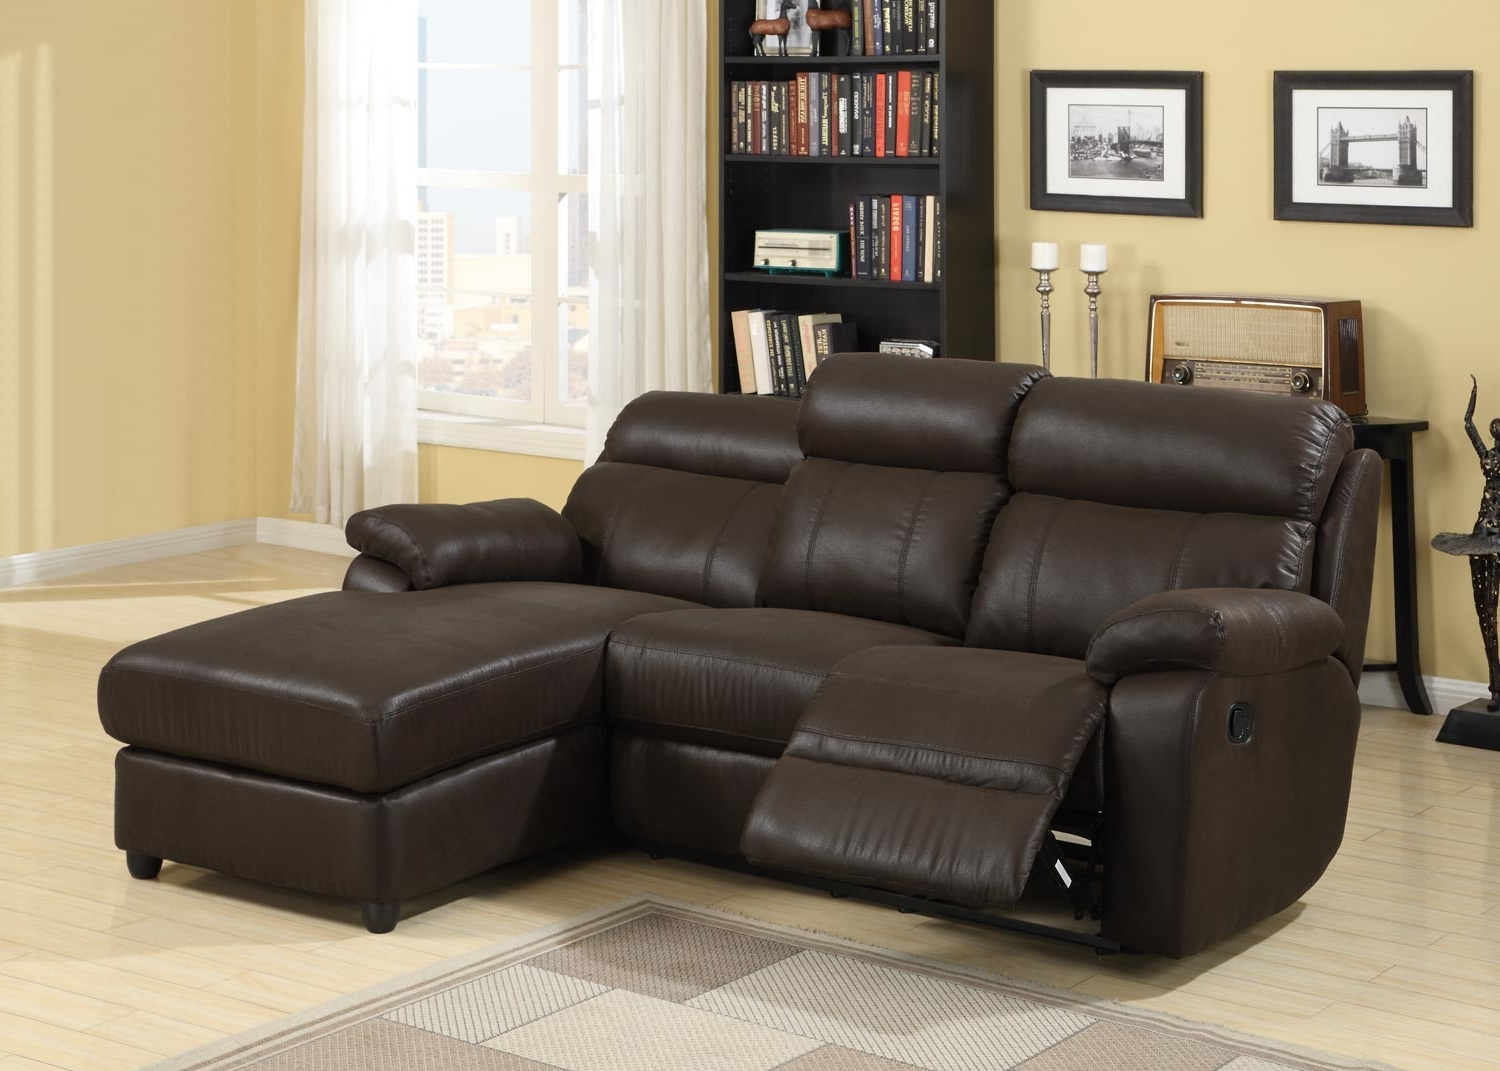 Well Known Sectional Sofas With Recliner And Chaise Lounge With Regard To Ethan Allen Sectional Sofas Natuzzi Leather Reclining Sectional (View 15 of 15)